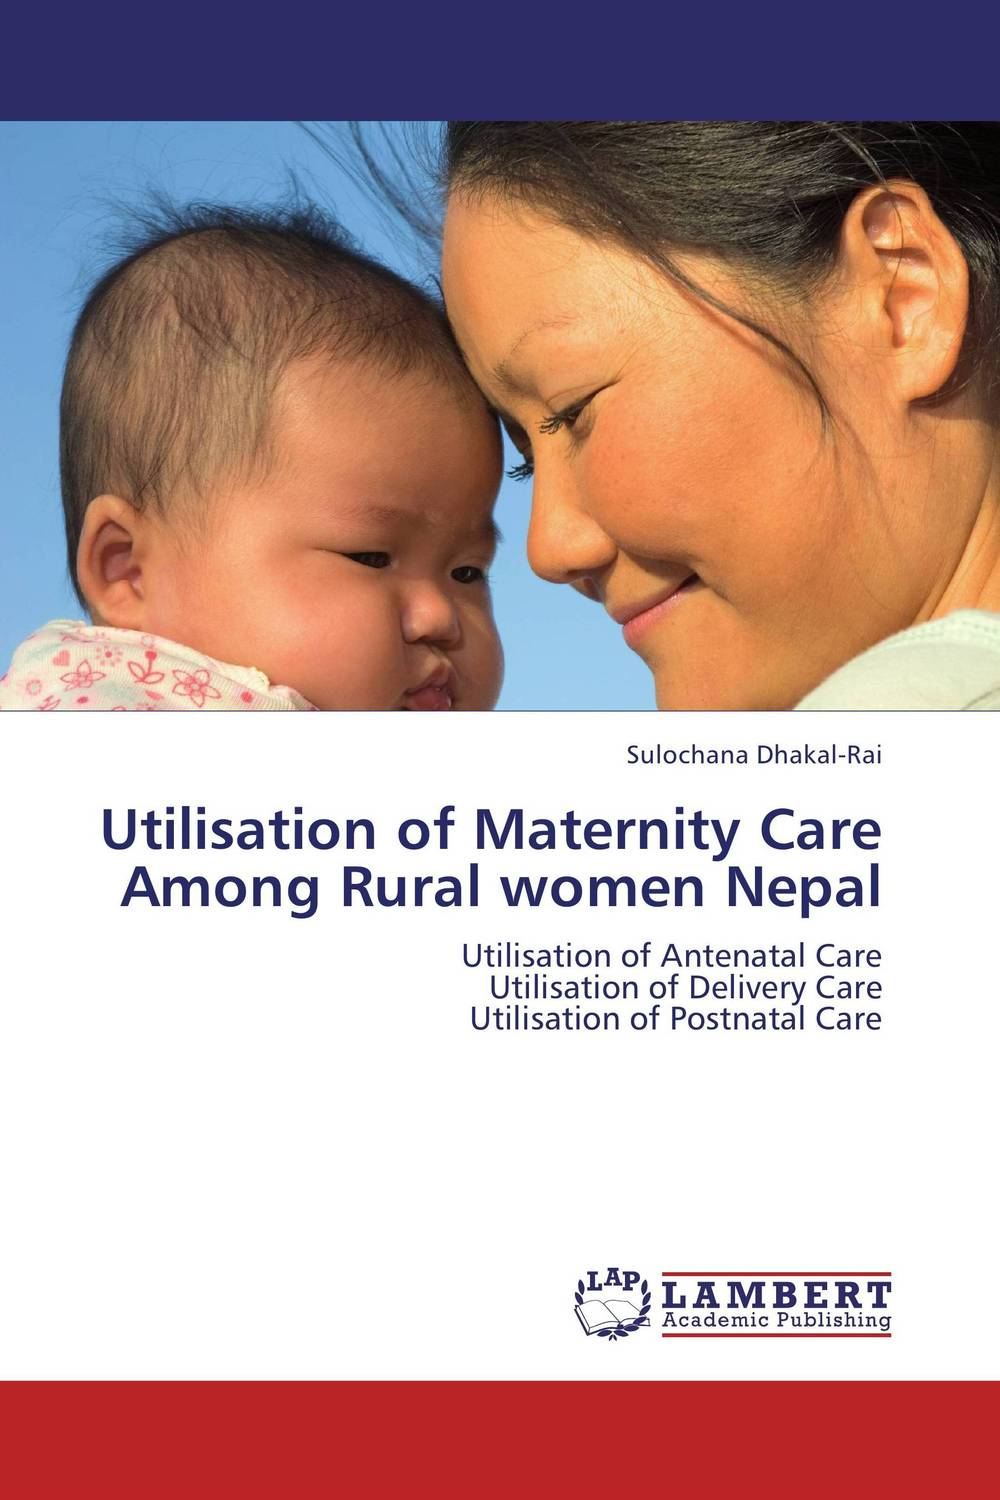 Utilisation of Maternity Care Among Rural women Nepal